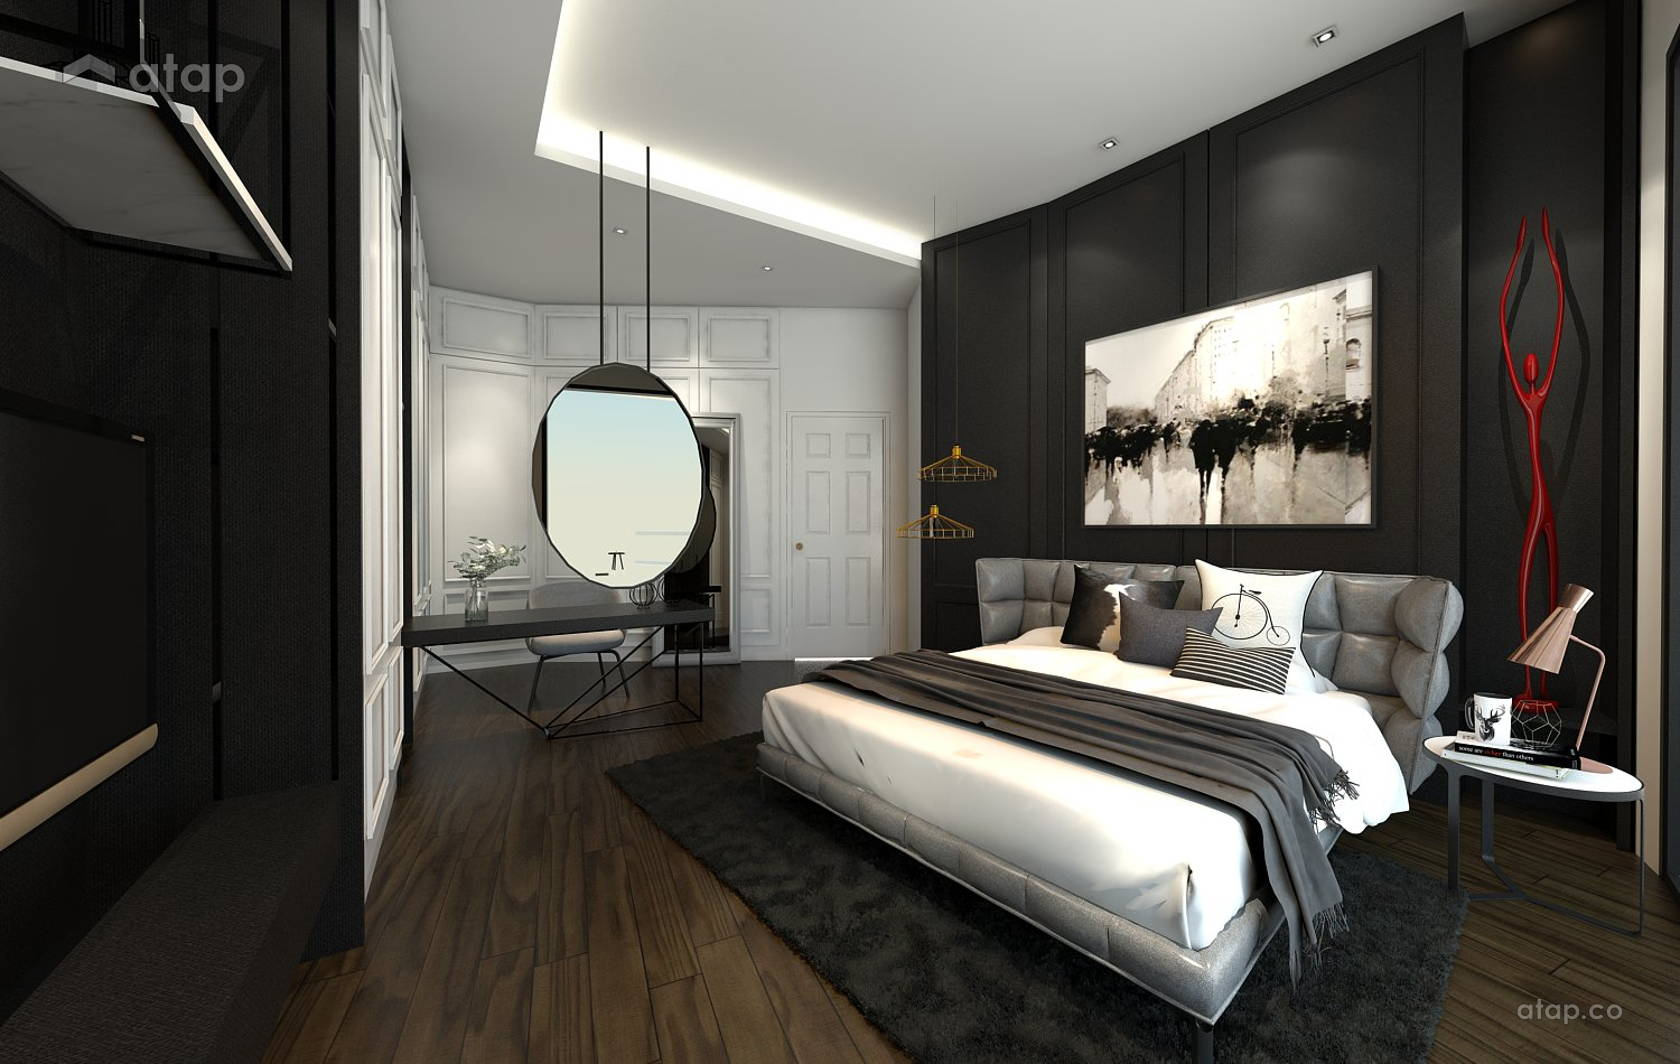 Classic Modern Bedroom Study Room @ O2 city Type D1 Showroom- Condo at Puchong South, Selangor